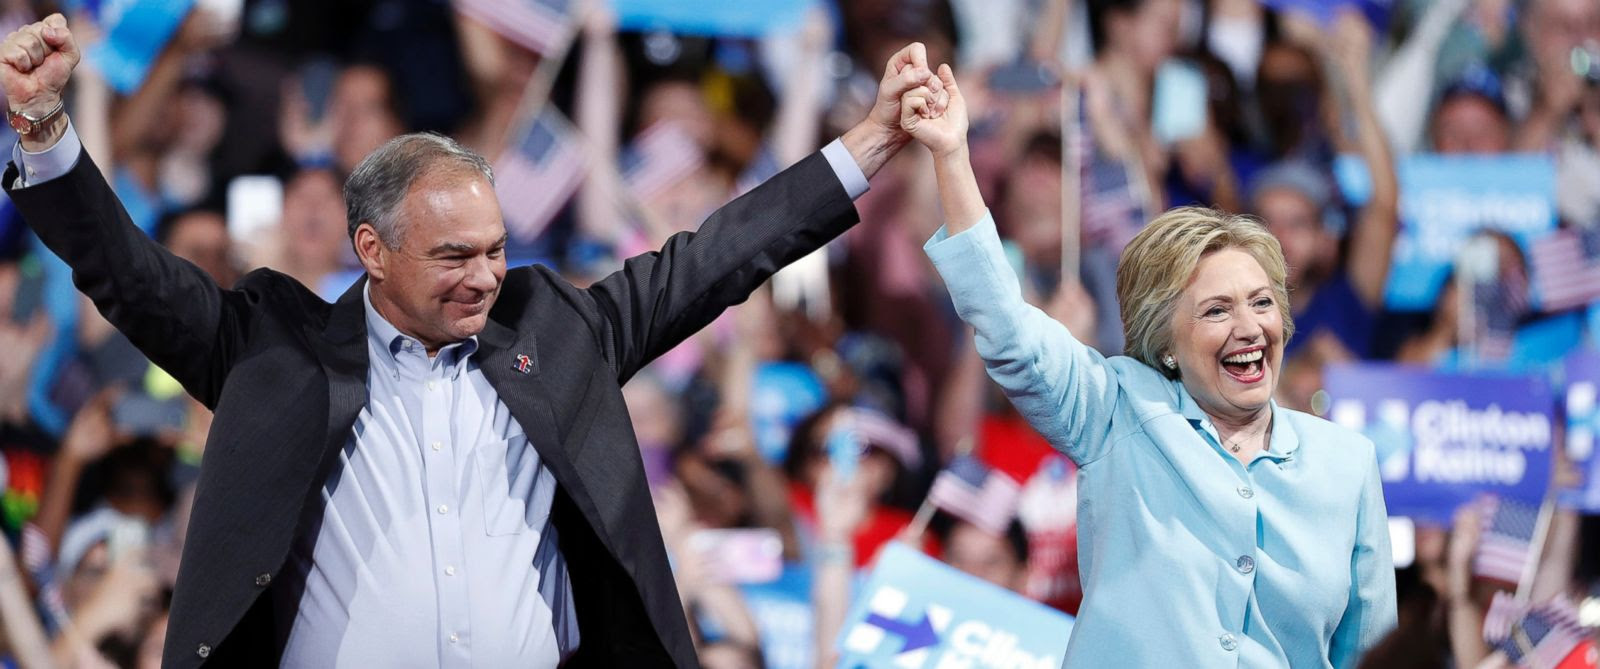 PHOTO: Democratic presidential candidate Hillary Clinton arrives with Sen. Tim Kaine, at a rally at Florida International University Panther Arena in Miami, July 23, 2016.